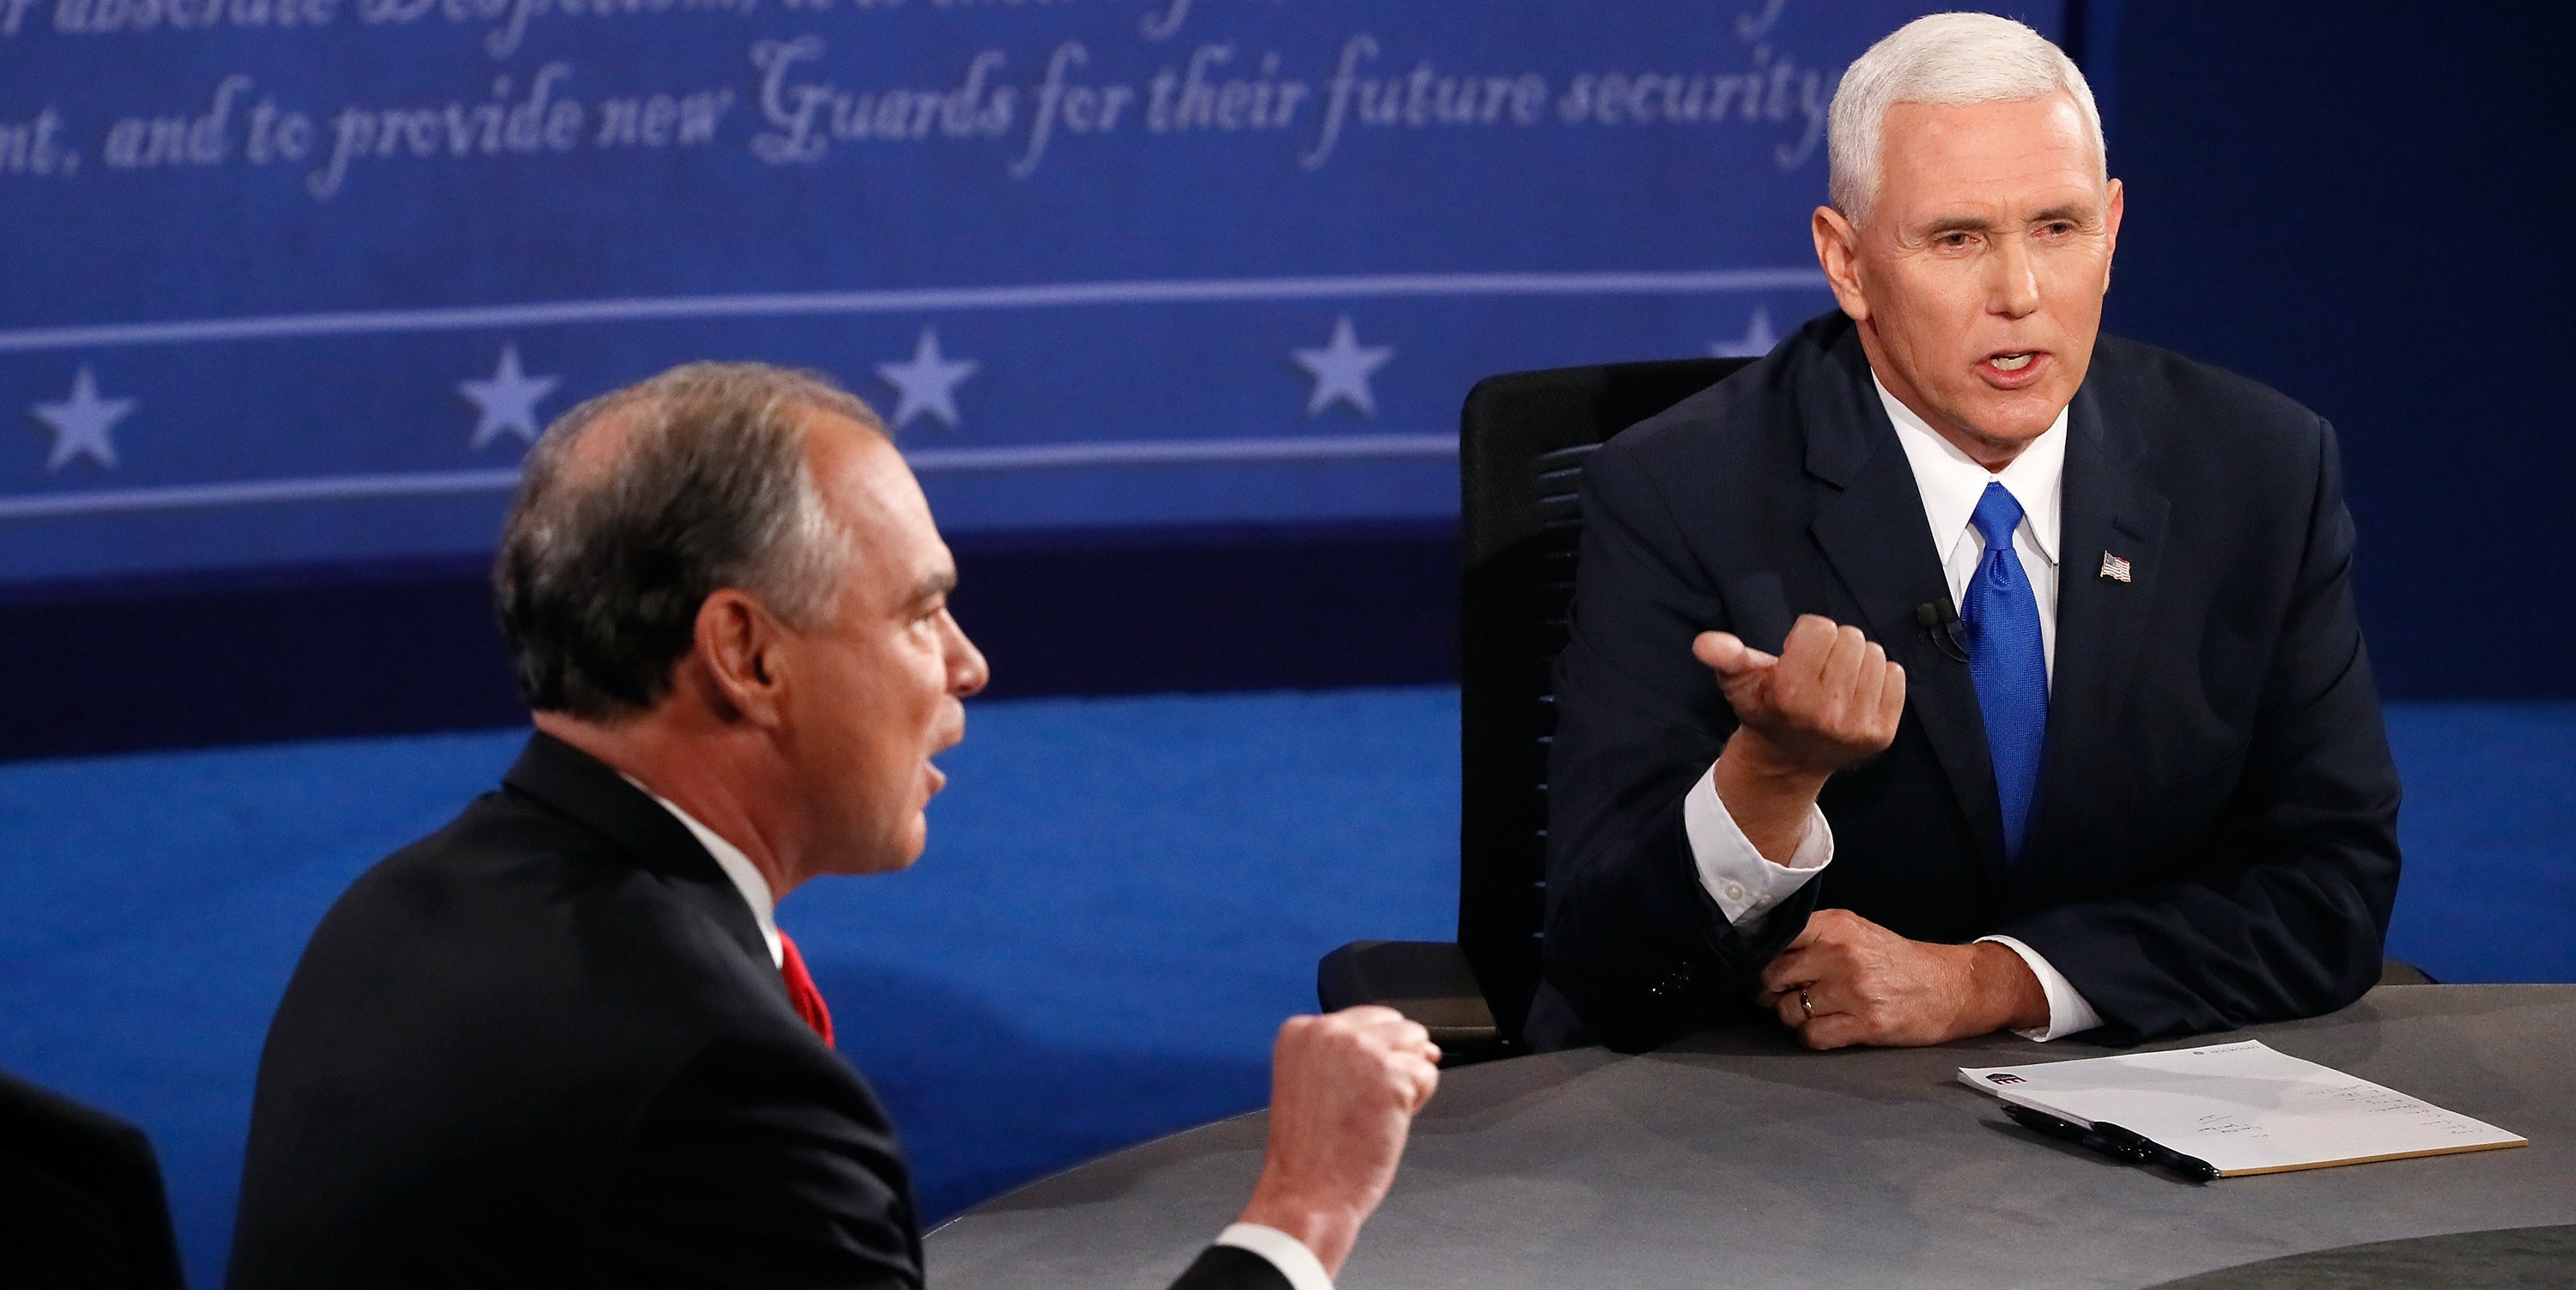 Democratic vice presidential nominee Tim Kaine (L) and Republican vice presidential nominee Mike Pence (R) speak during the Vice Presidential Debate at Longwood University on October 4, 2016 in Farmville, Virginia. This is the second of four debates during the presidential election season and the only debate between the vice presidential candidates.